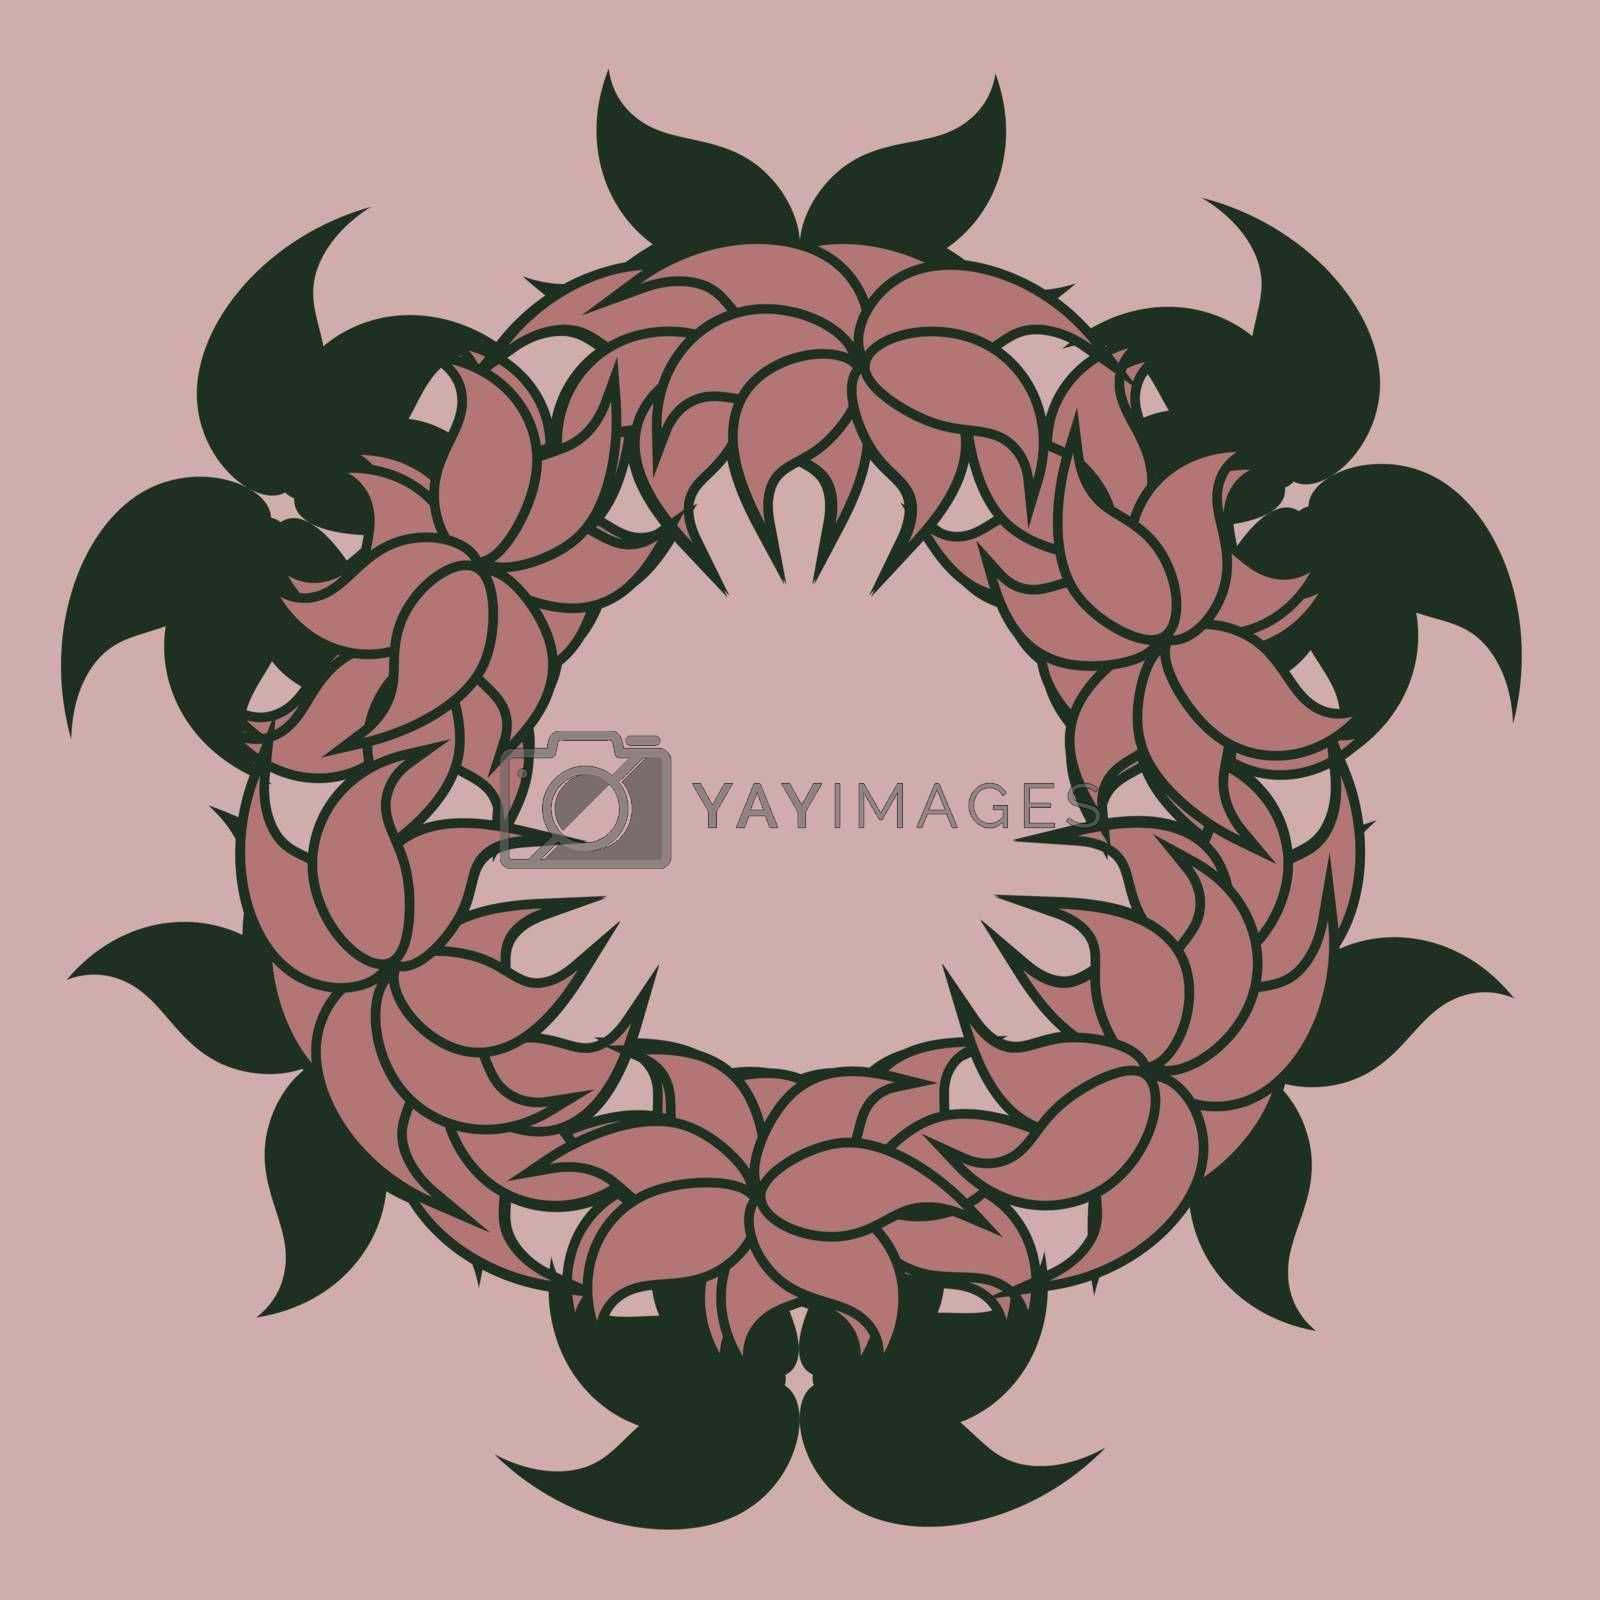 pink abstract floral wreath with green leaves by paranoido